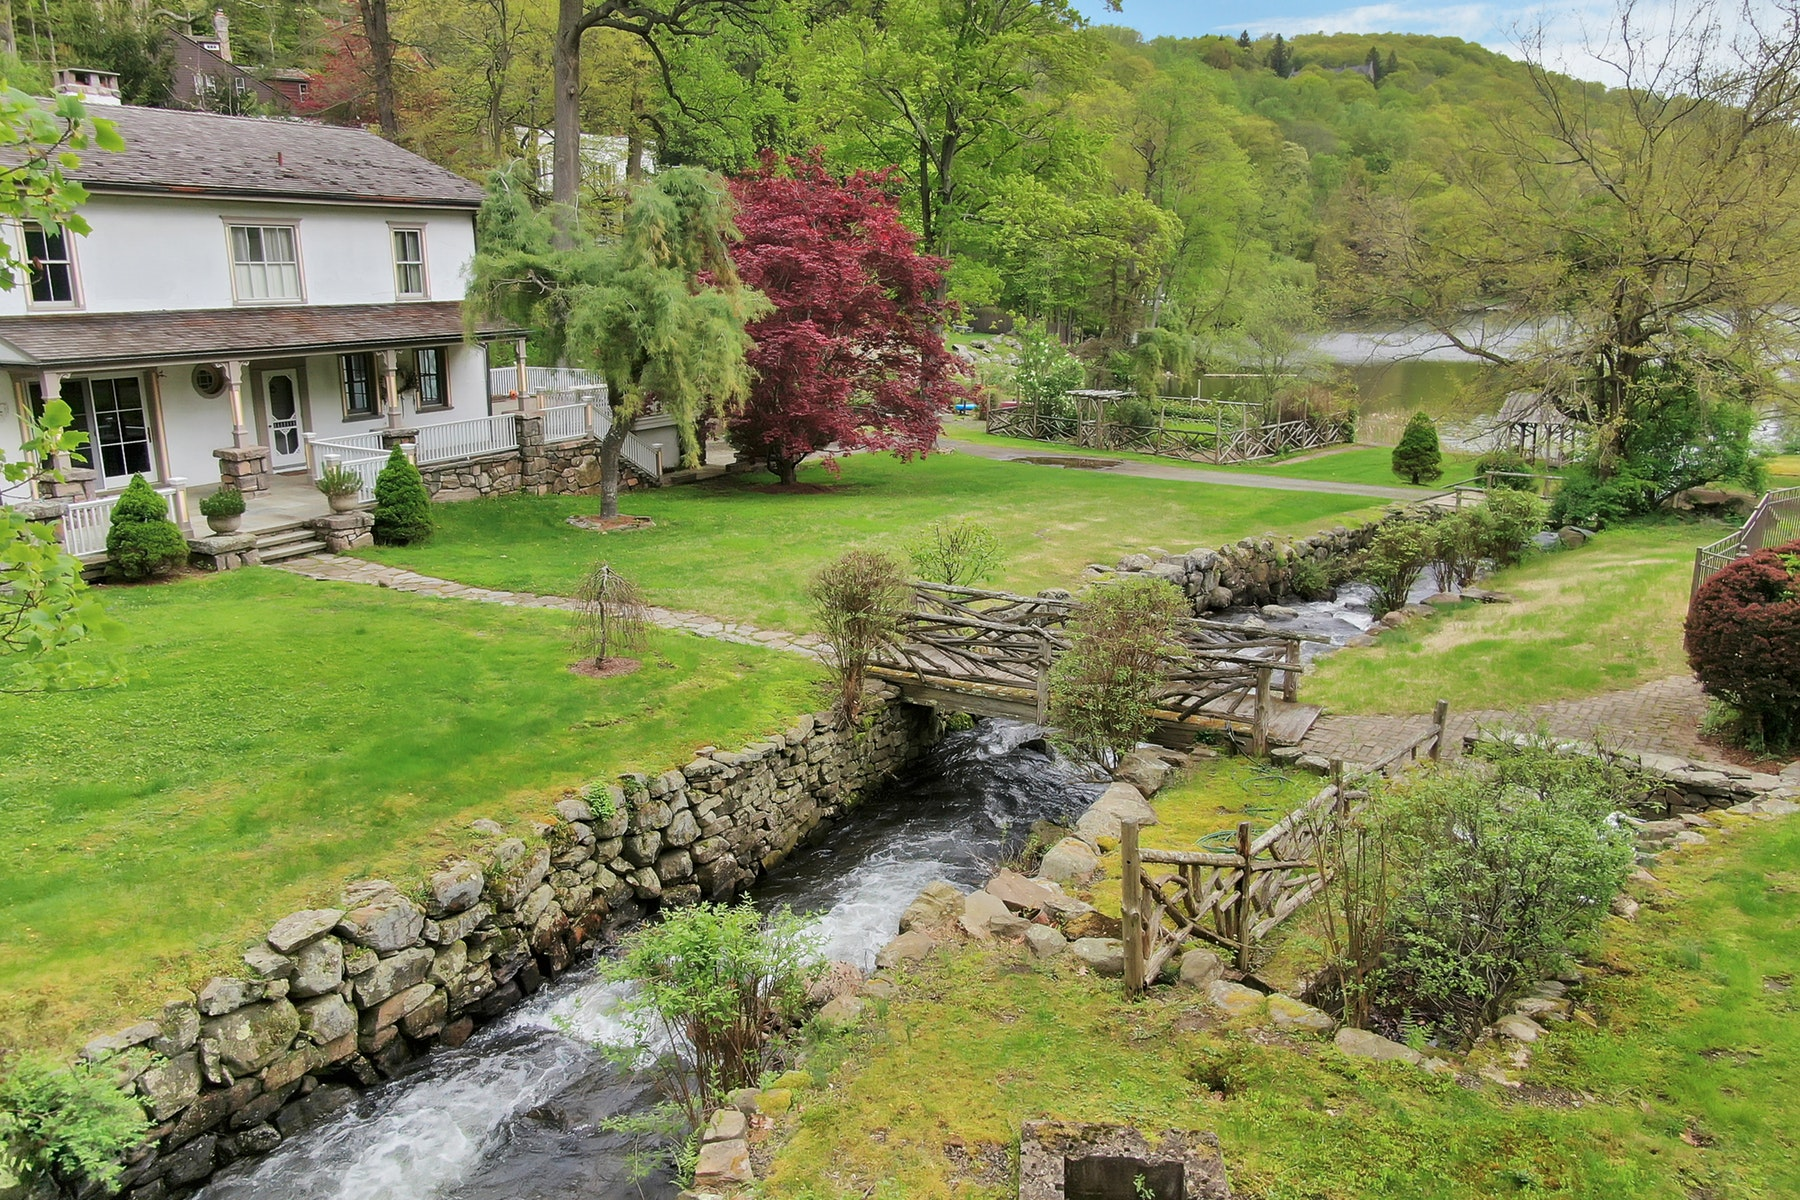 Single Family Homes for Sale at The Old Fish Hatchery - Lakefront 23 West Lake Road Tuxedo Park, New York 10987 United States